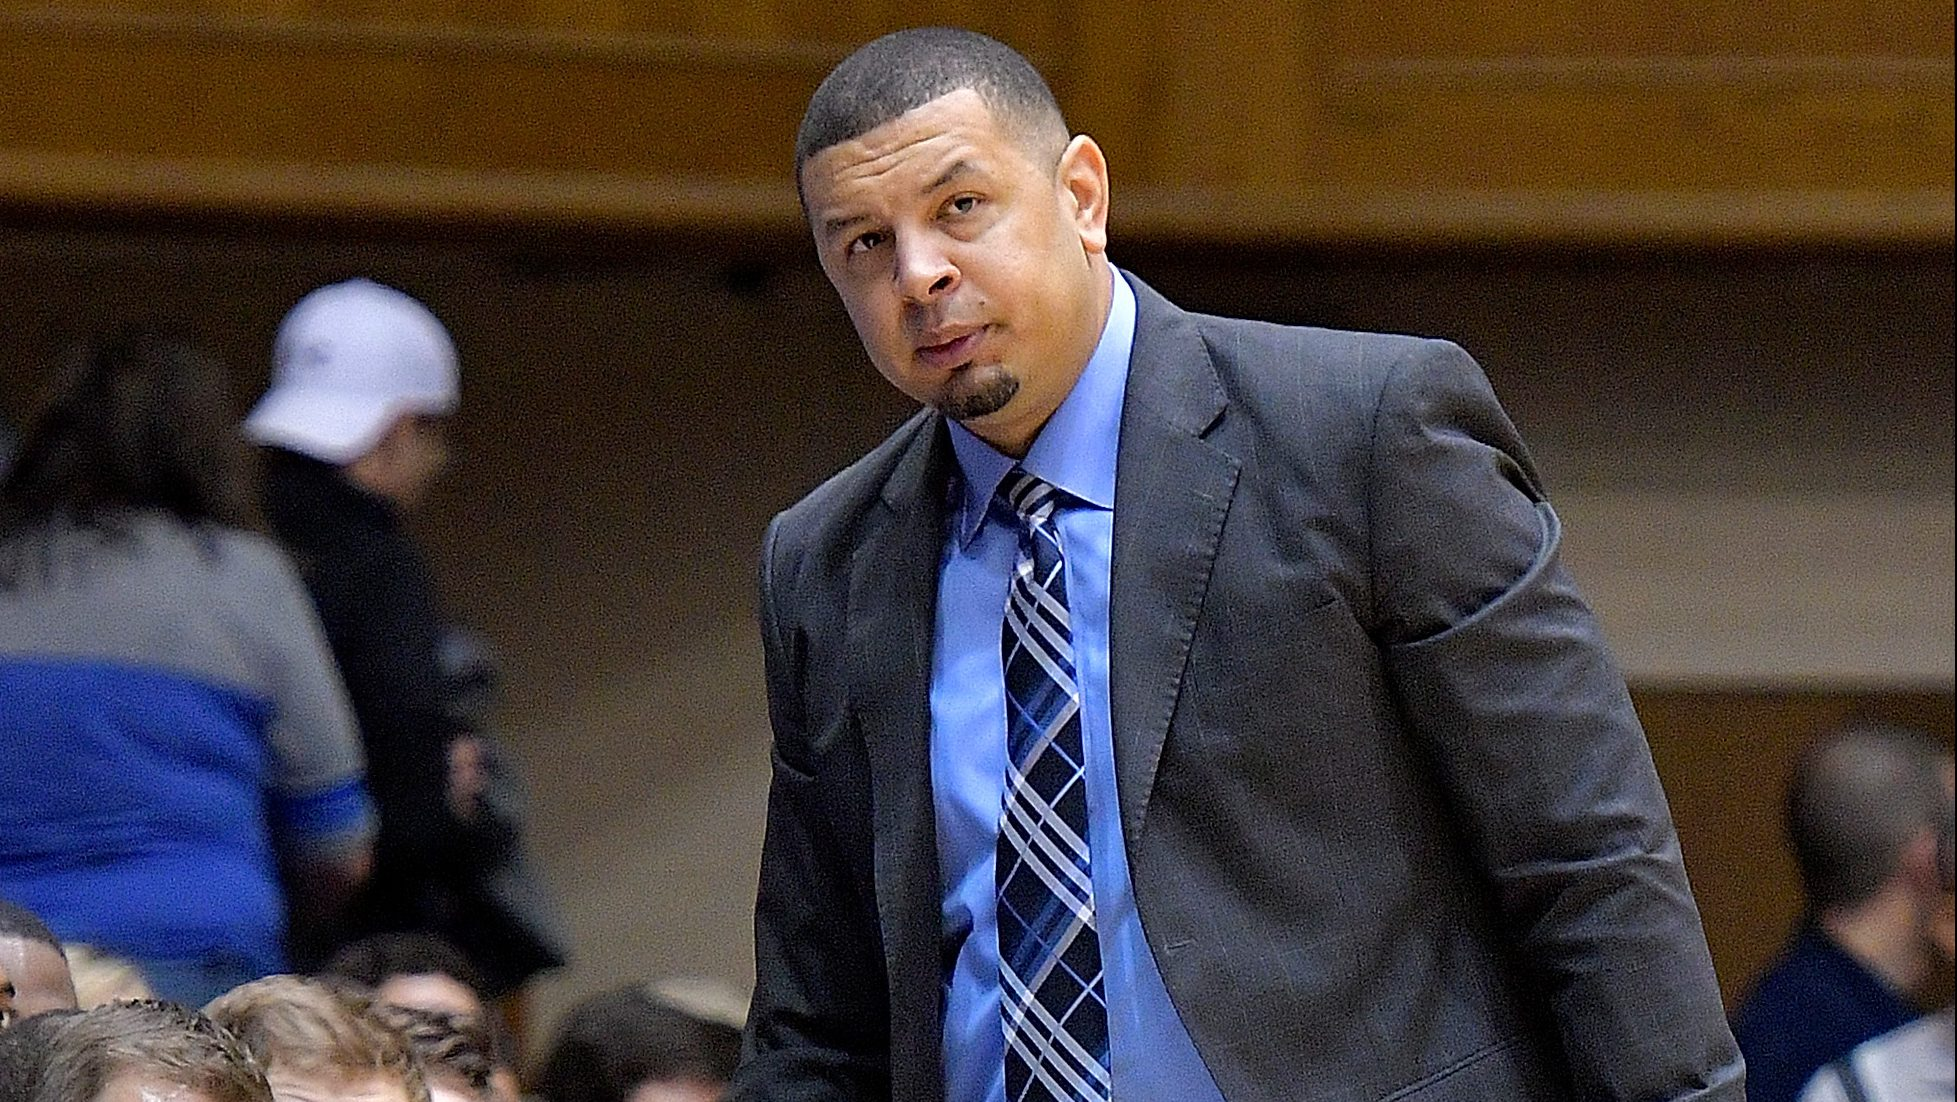 DURHAM, NC - JANUARY 04: Associate head coach Jeff Capel of the Duke Blue Devils watches during the game against the Georgia Tech Yellow Jackets at Cameron Indoor Stadium on January 4, 2017 in Durham, North Carolina. Duke won 110-57. (Photo by Grant Halverson/Getty Images)